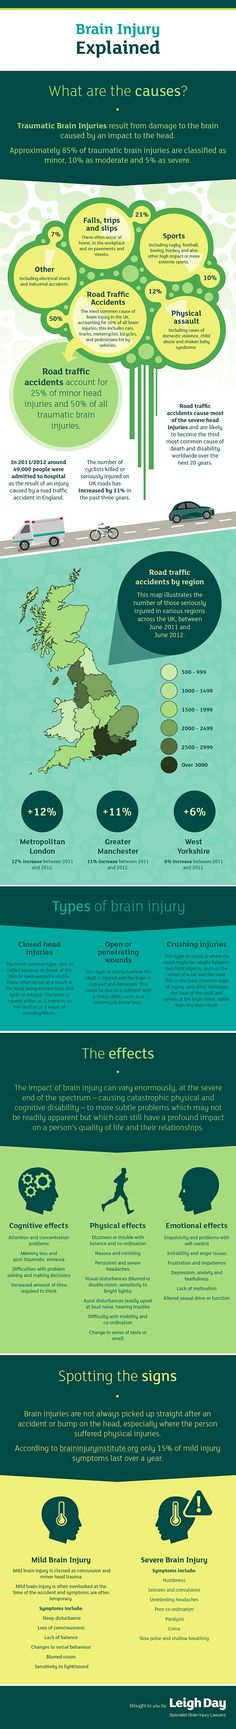 This infographic seeks to raise awareness of the causes, effects and signs of traumatic brain injury.  By presenting the information in a visual format our hope is that it will provide an alternative way for people to learn about traumatic brain injury.